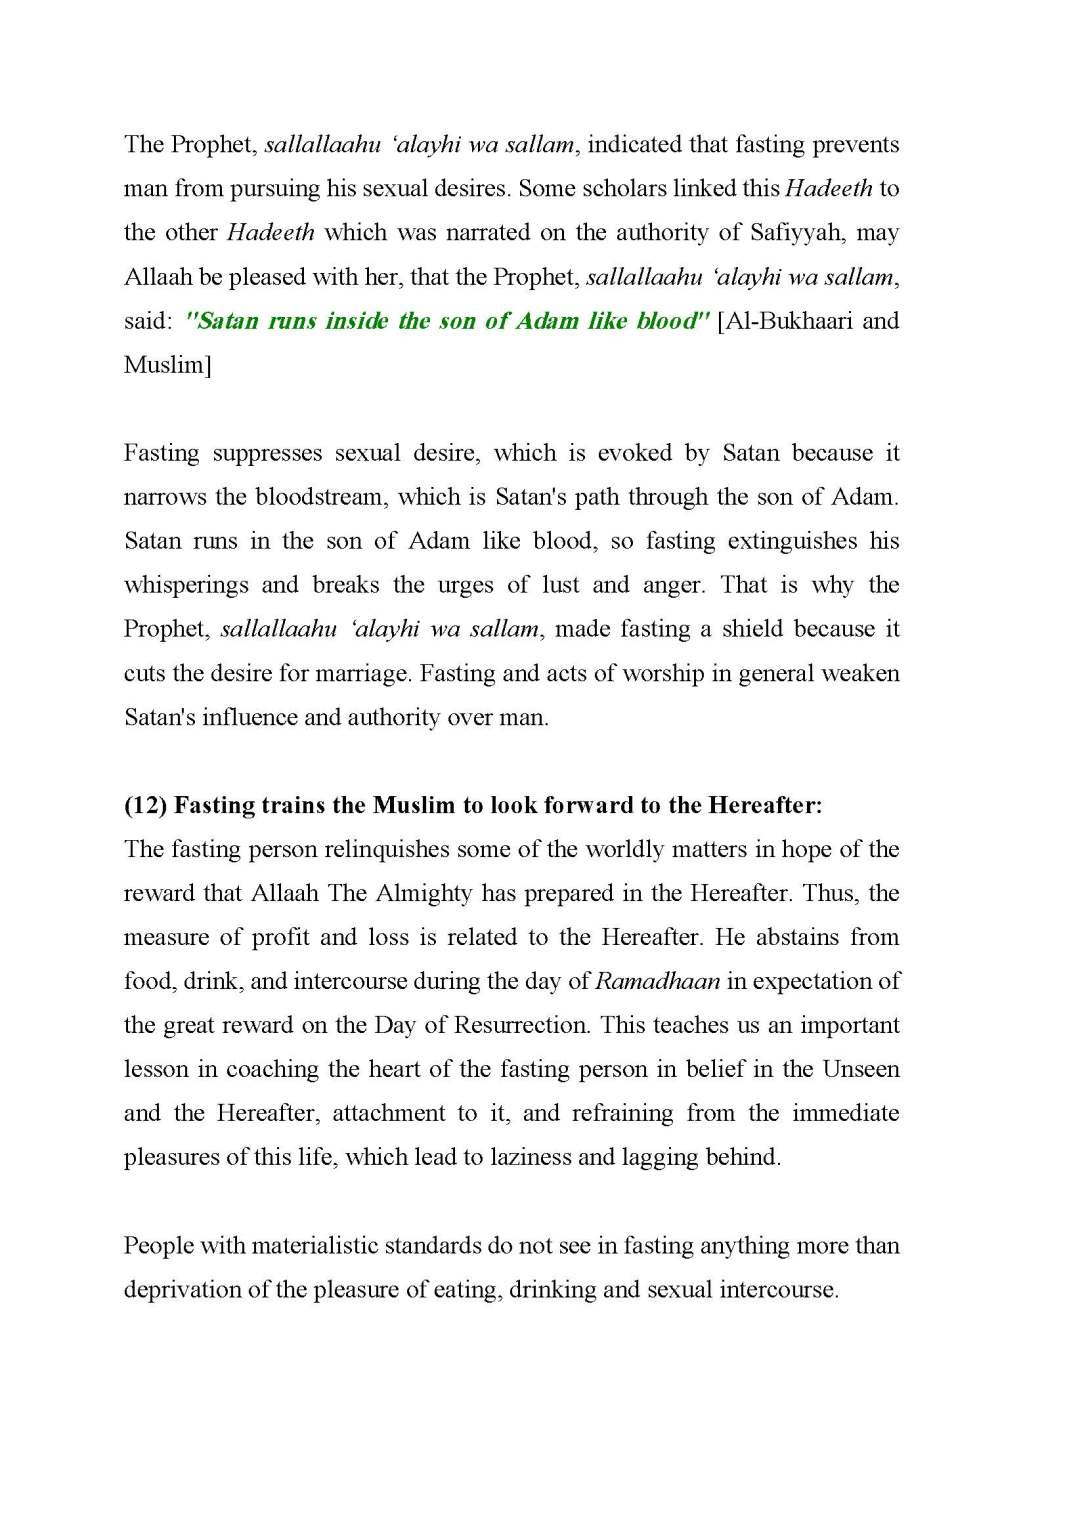 Benefits_and_Secrets_of_Fasting_Page_31